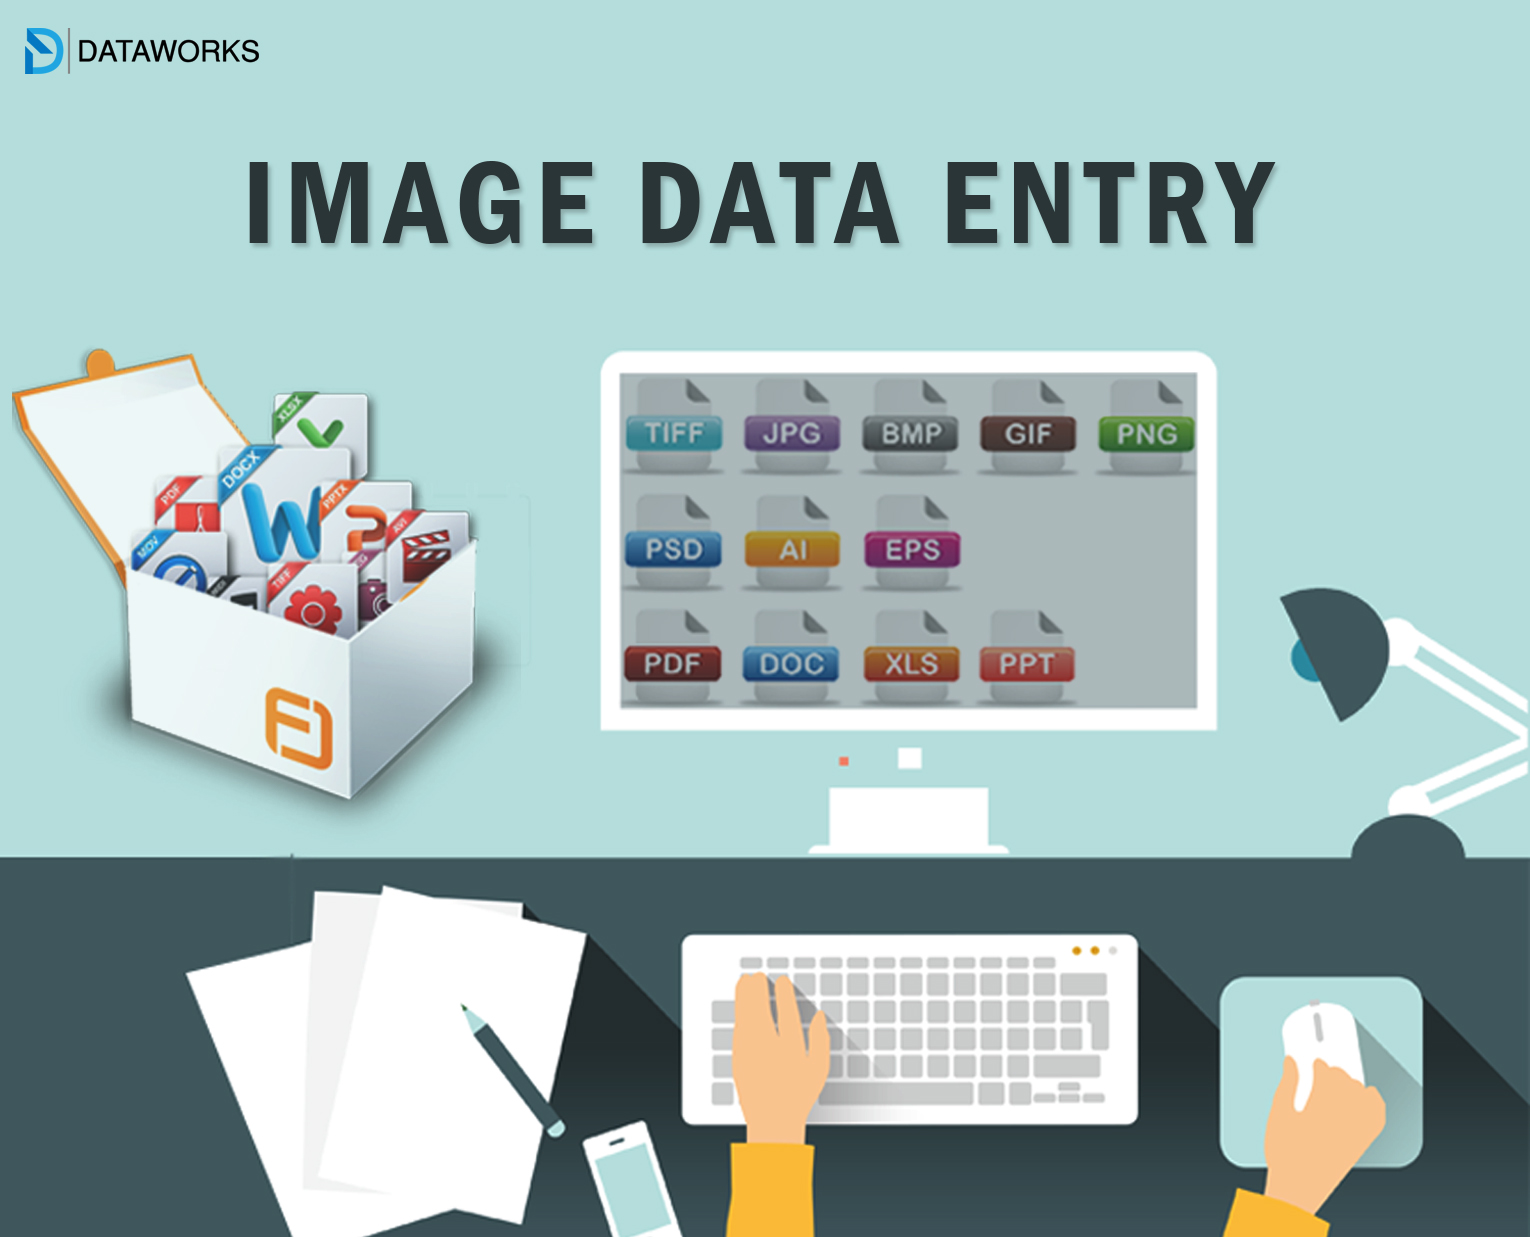 image-data-entry-a-innovation-in-data-entry-techniques